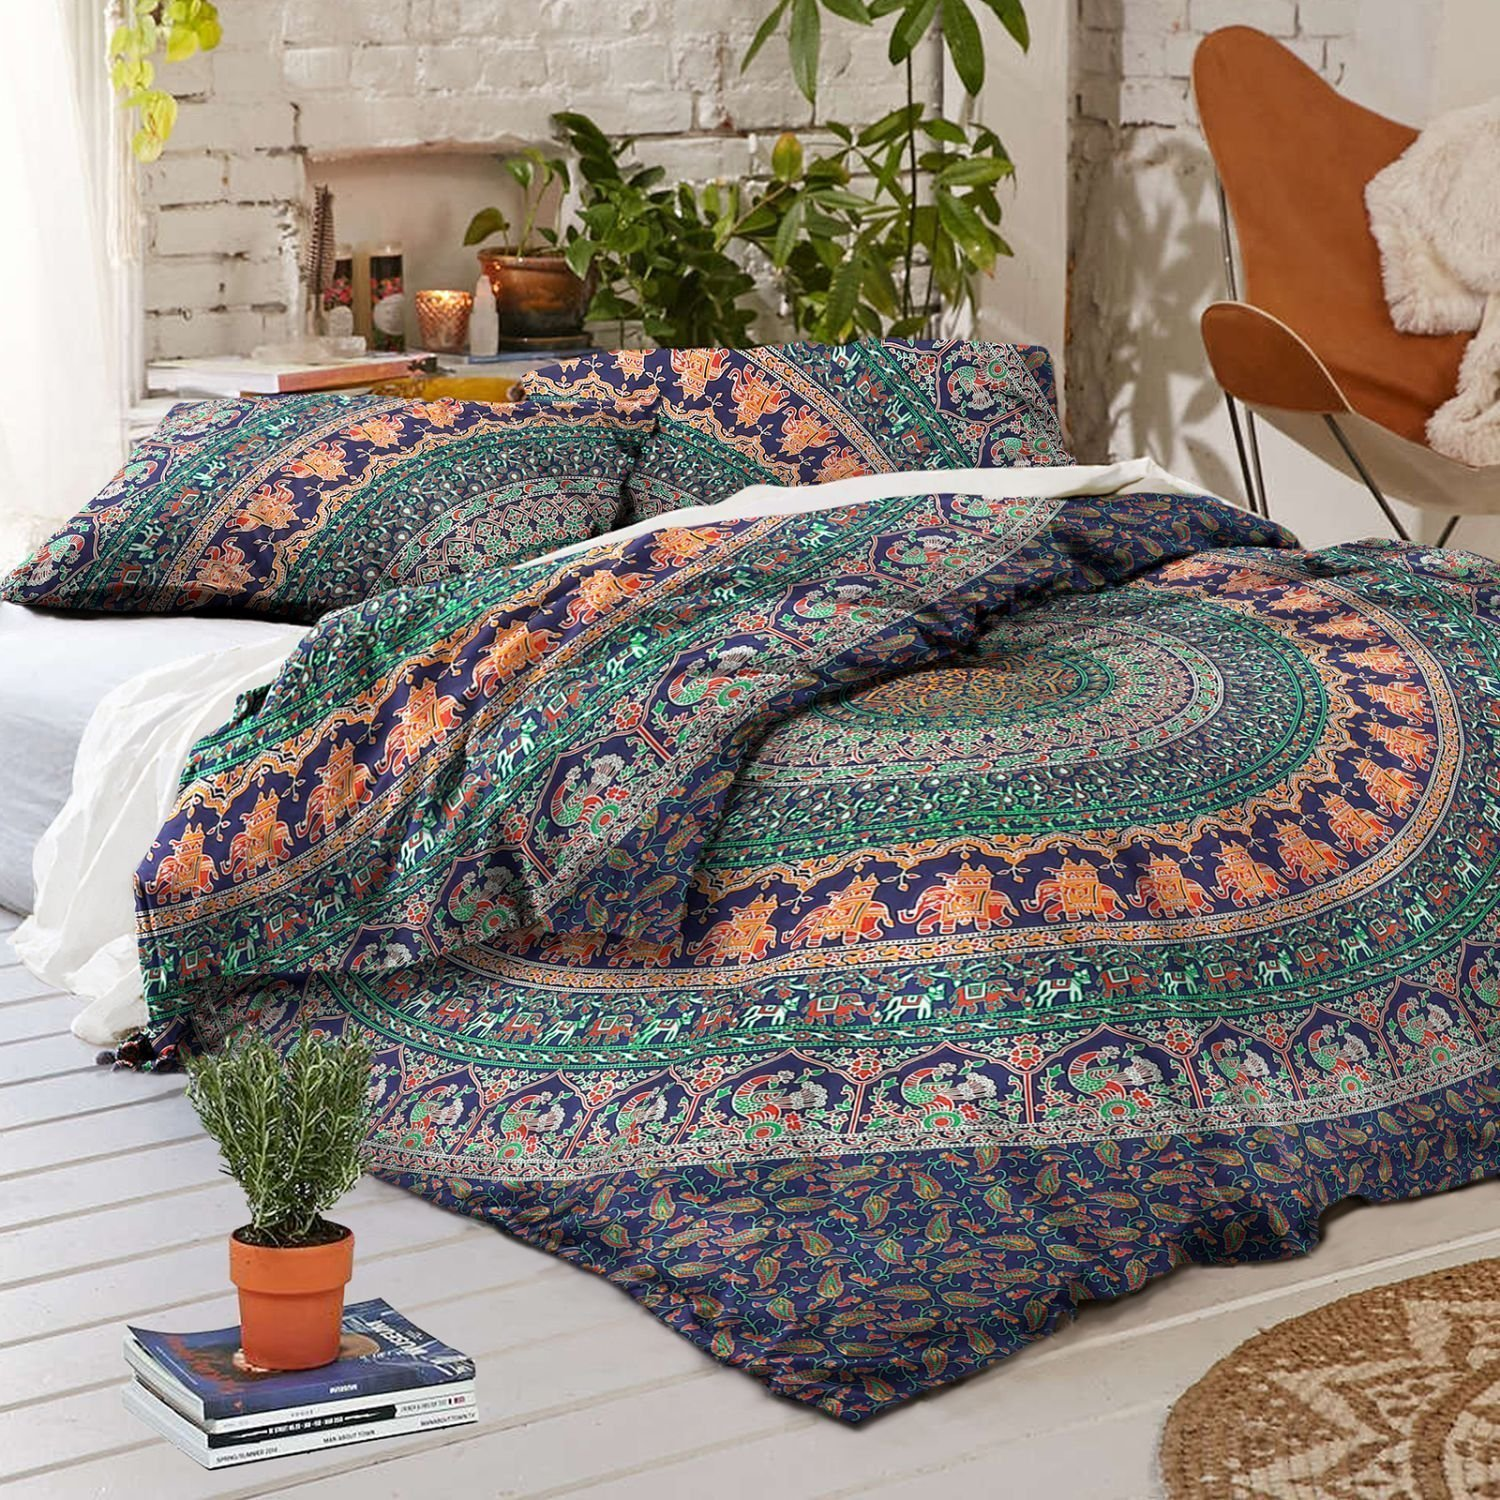 Queen Mandala Tapestry Indian Wall Hanging Bohemian Hippie Bedspread Throw 014